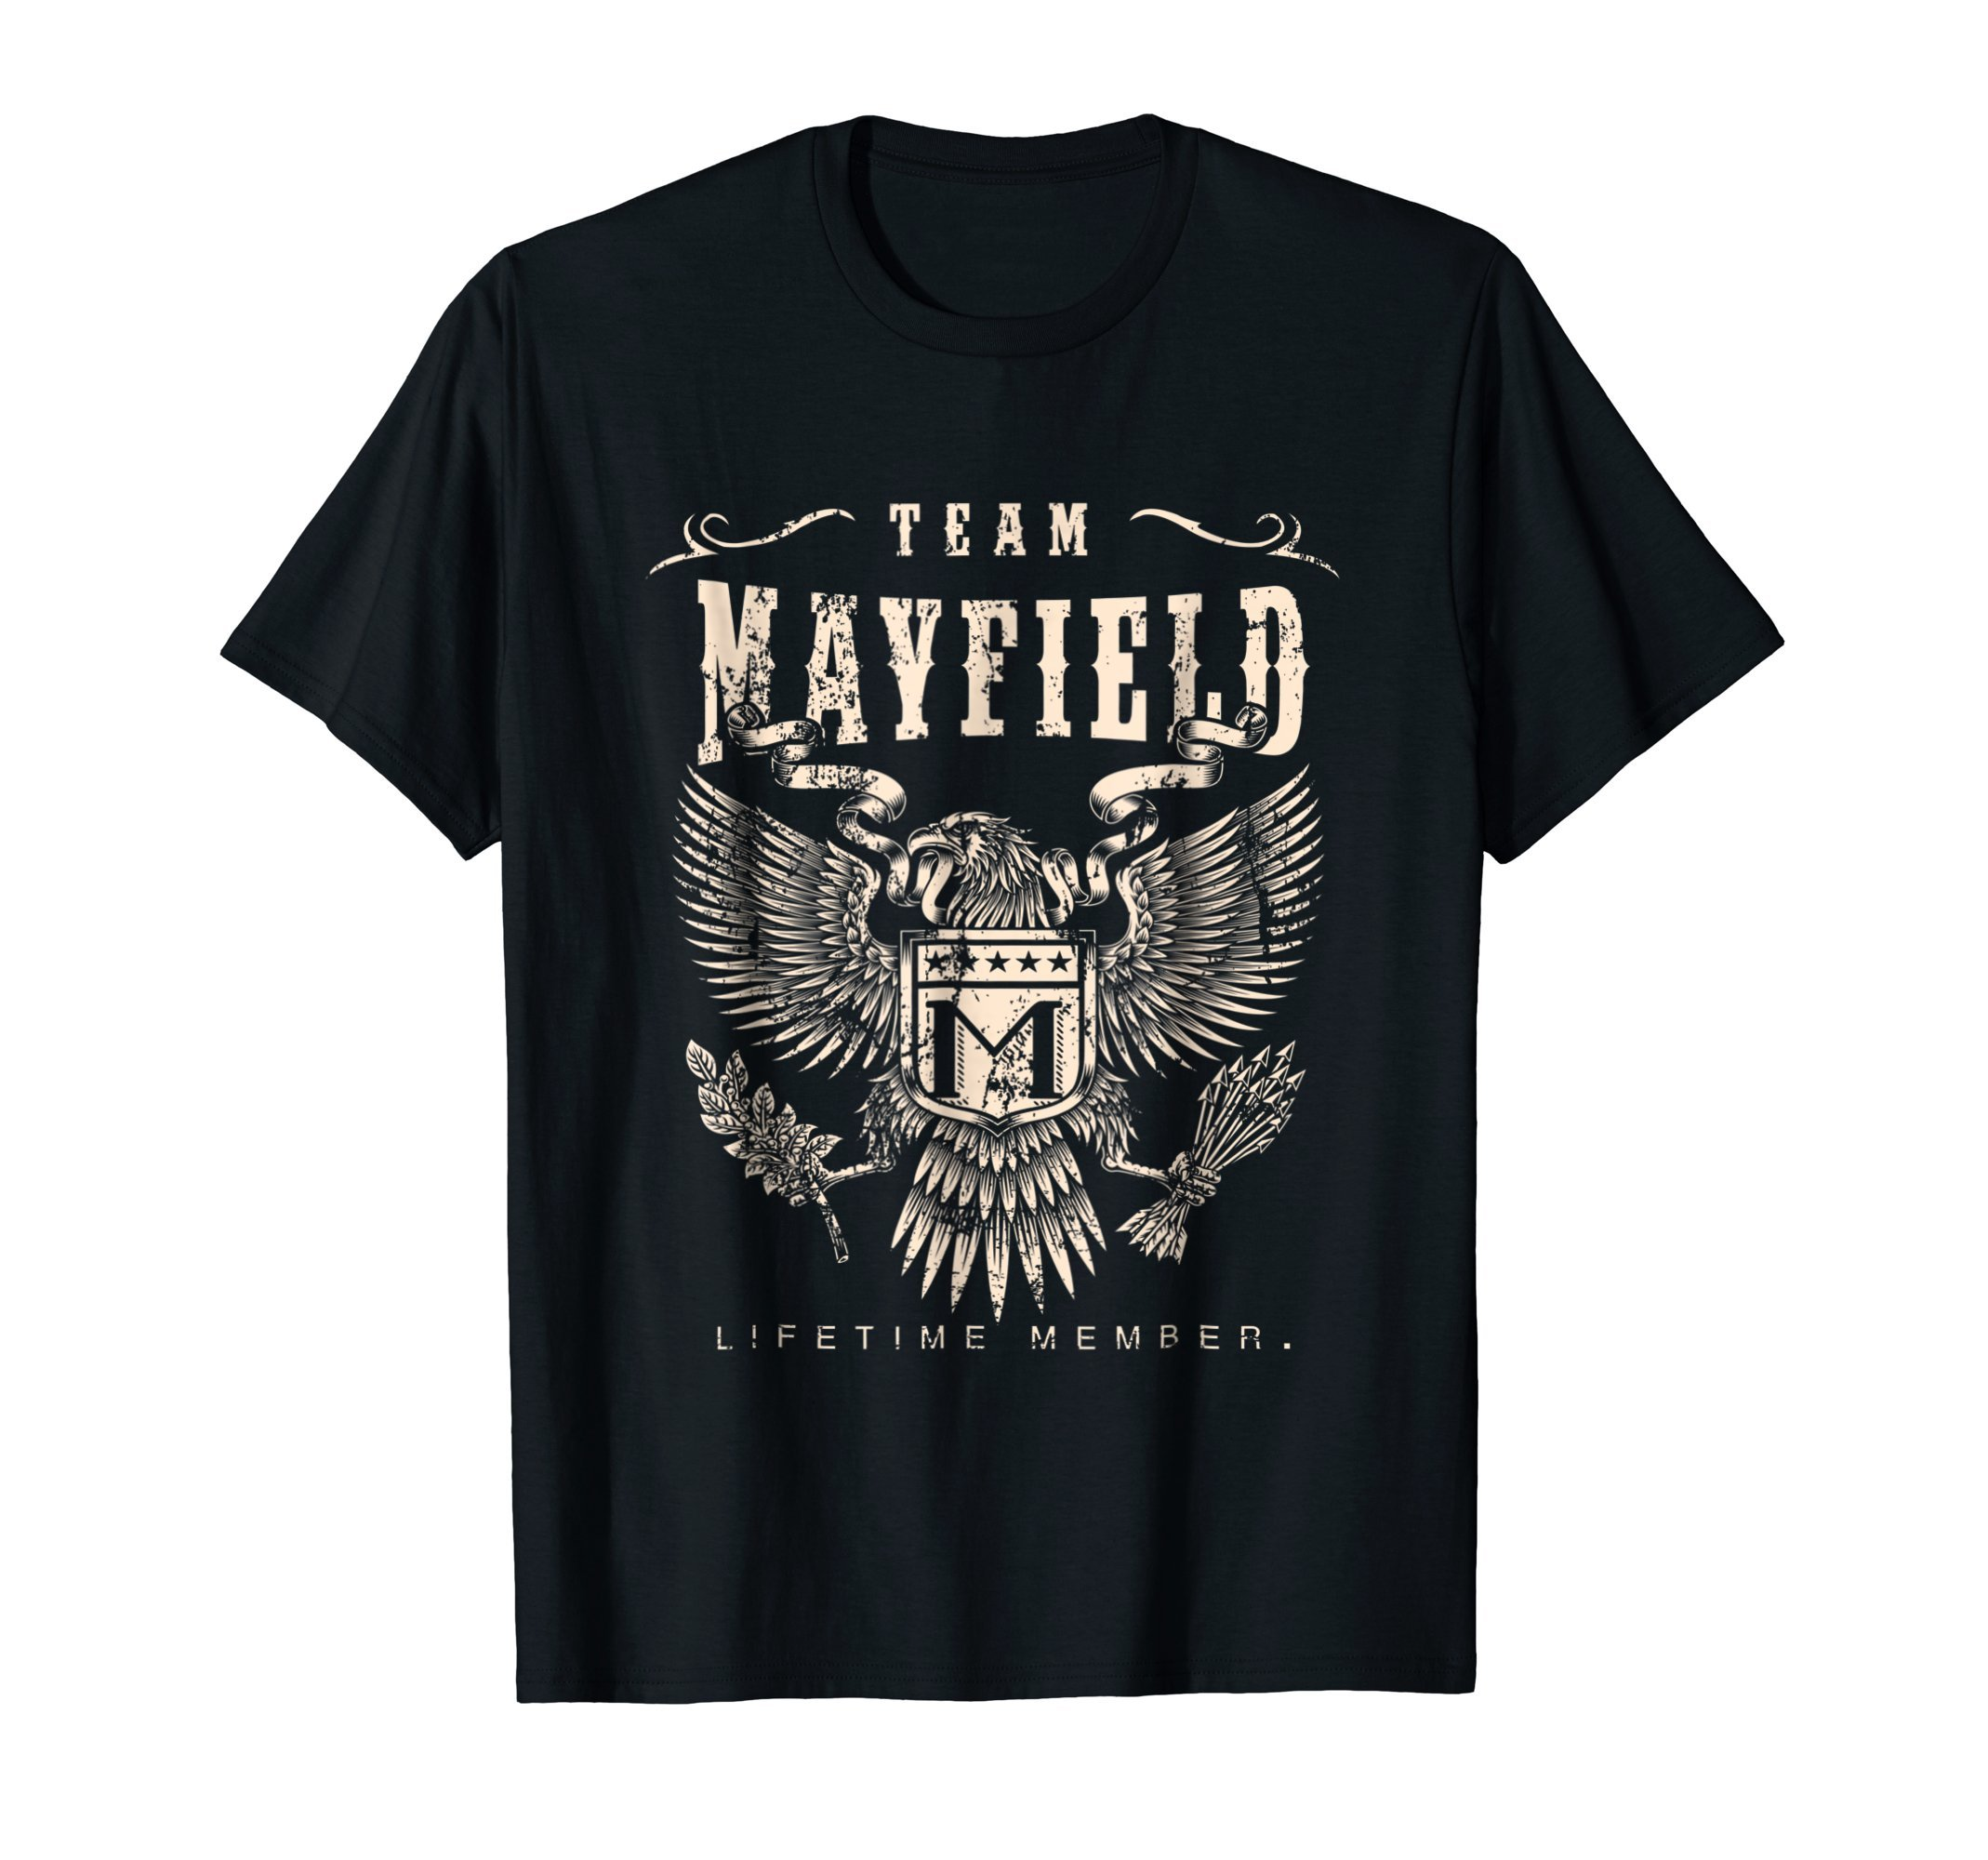 Love MAYFIELD Tshirt by ALTAMONT (Image #1)